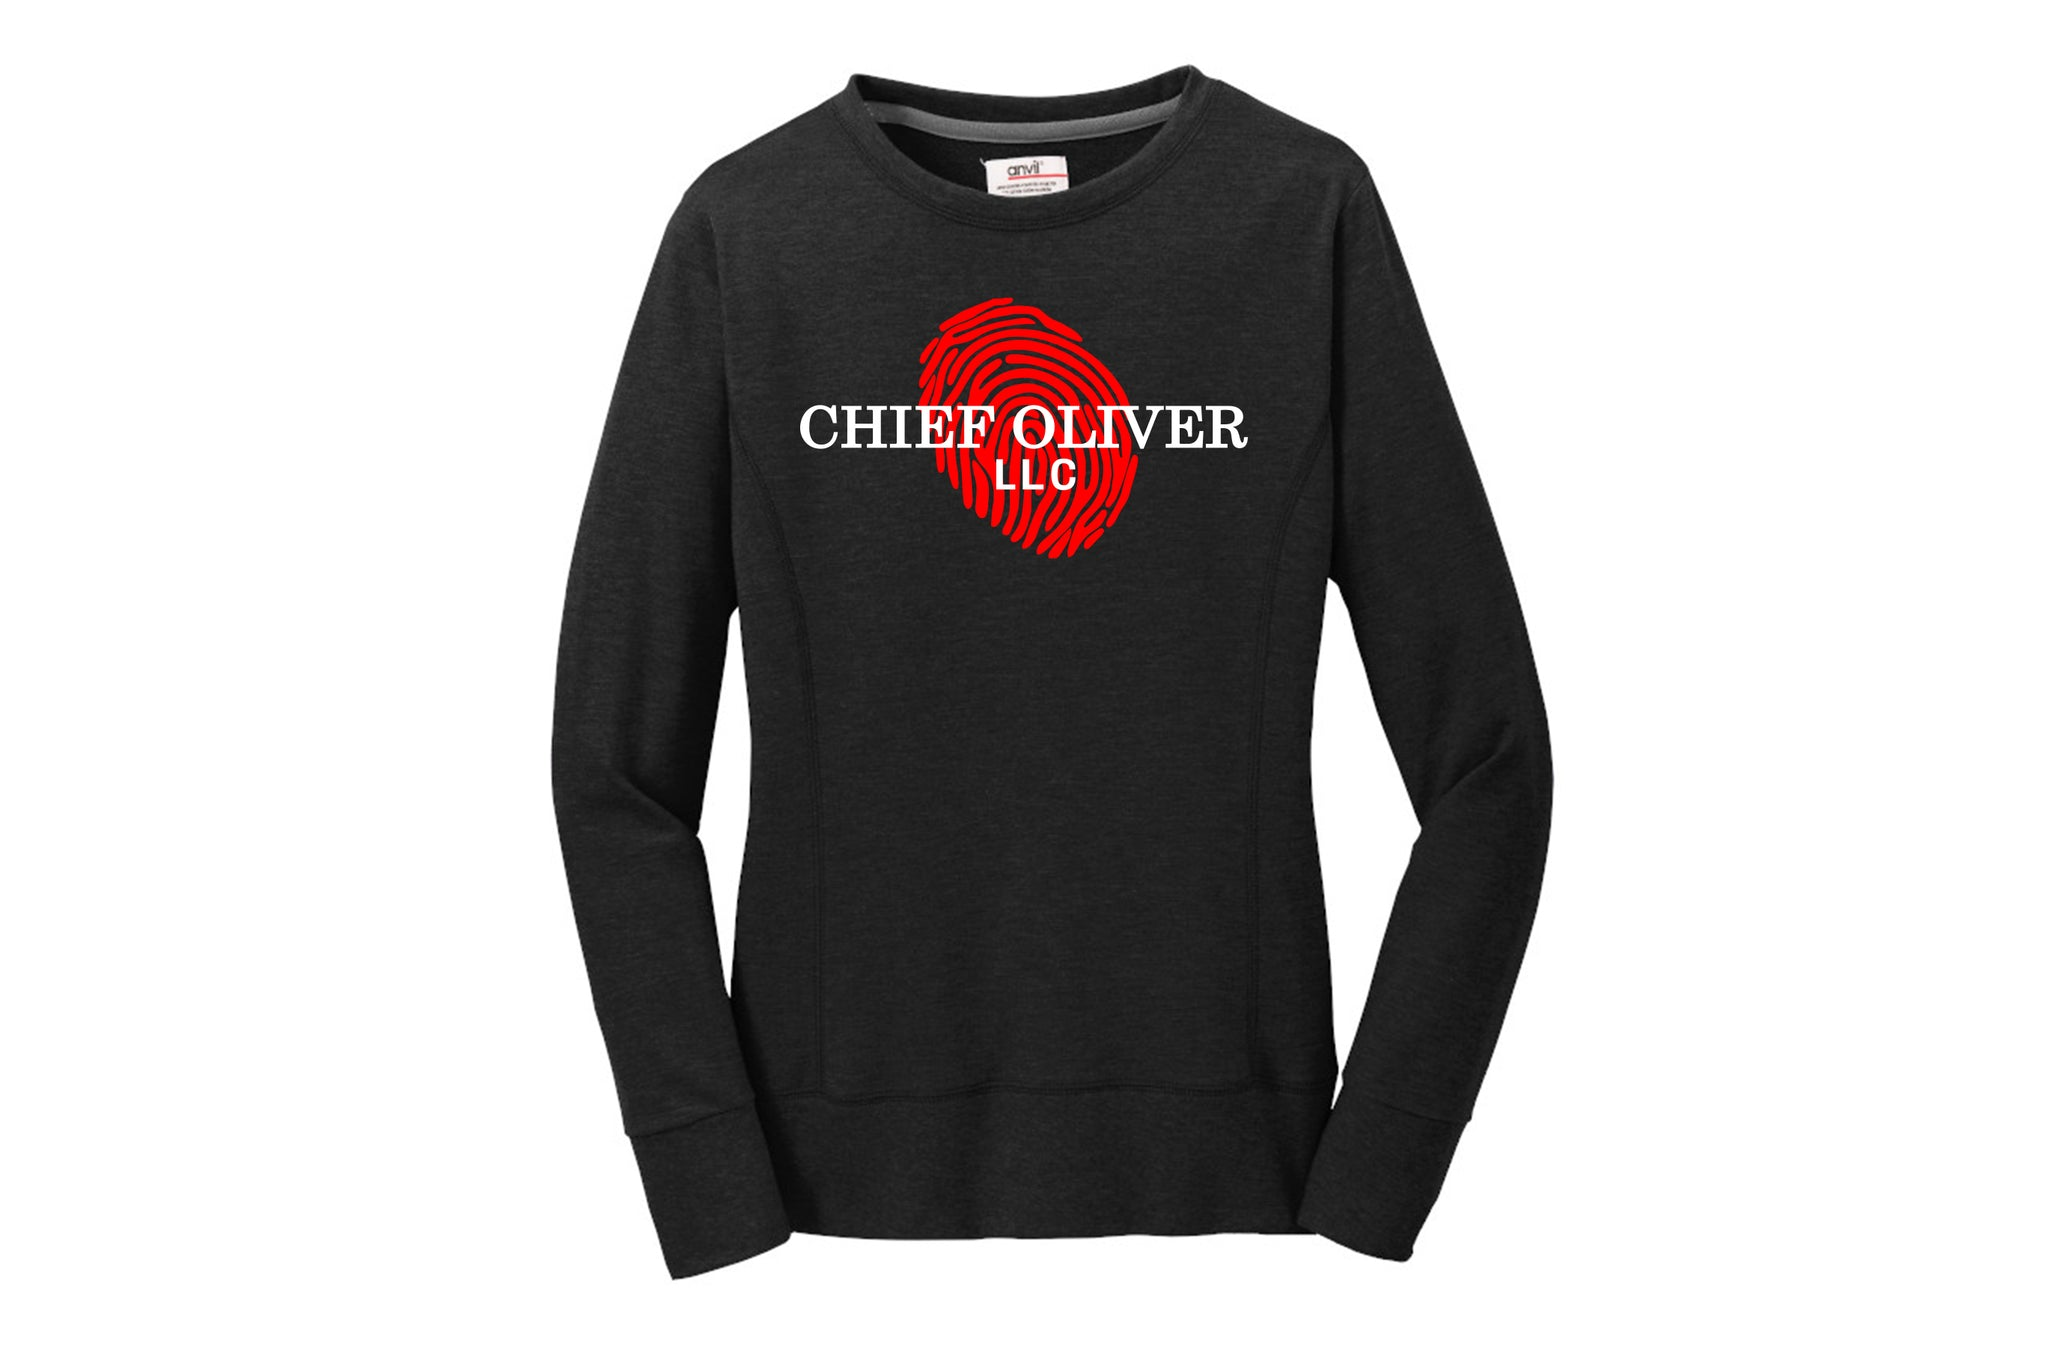 Chief Oliver Women's Crewneck Sweatshirt